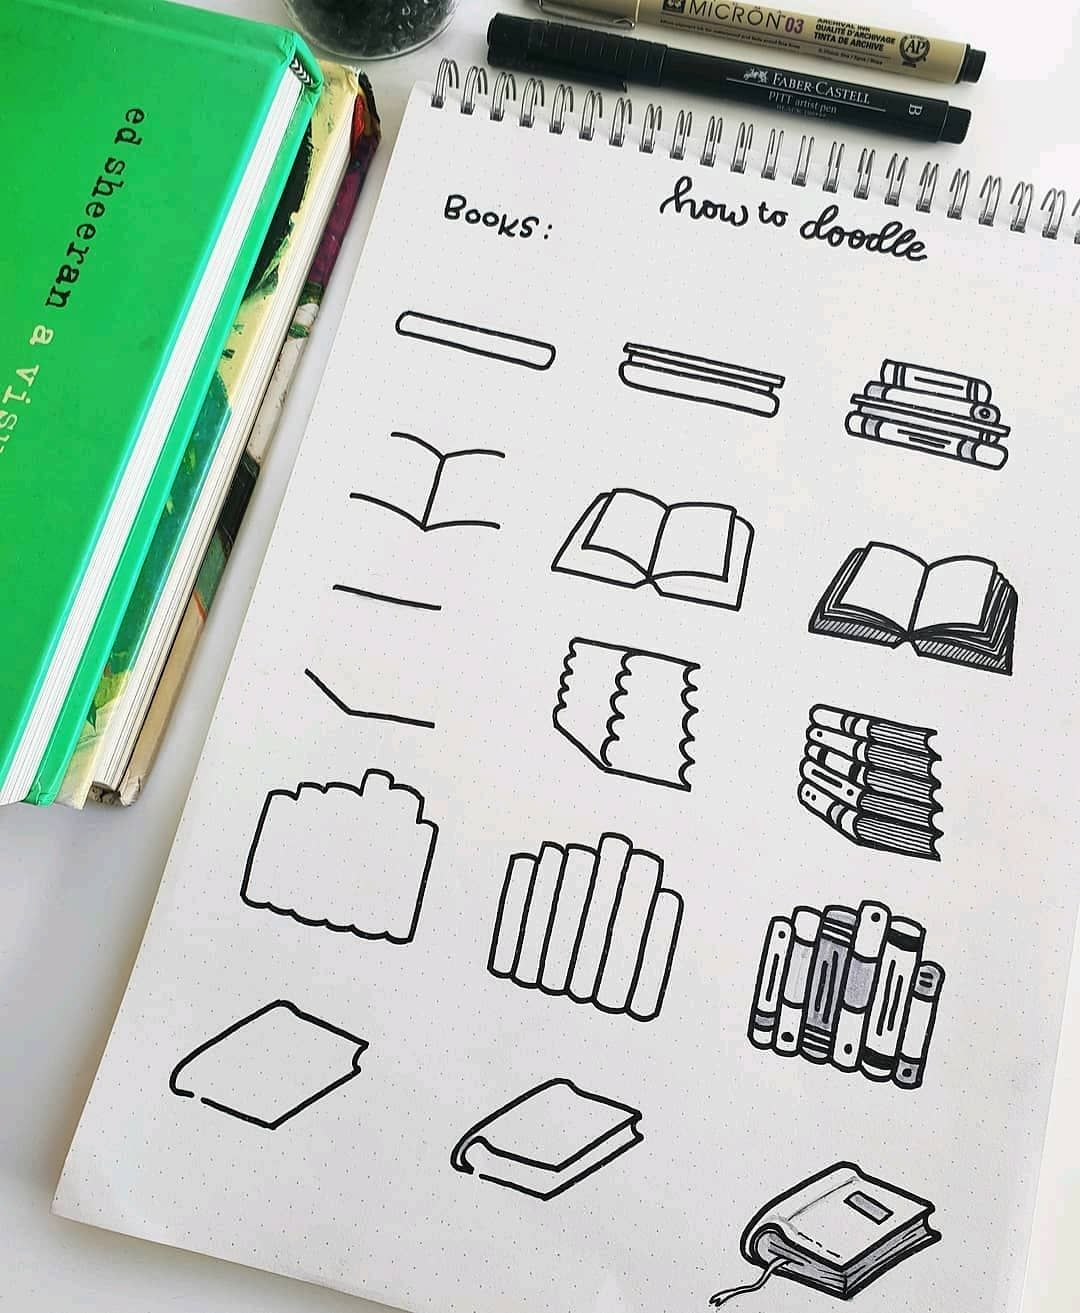 60 How to Doodle Tutorials for Your Bullet Journal